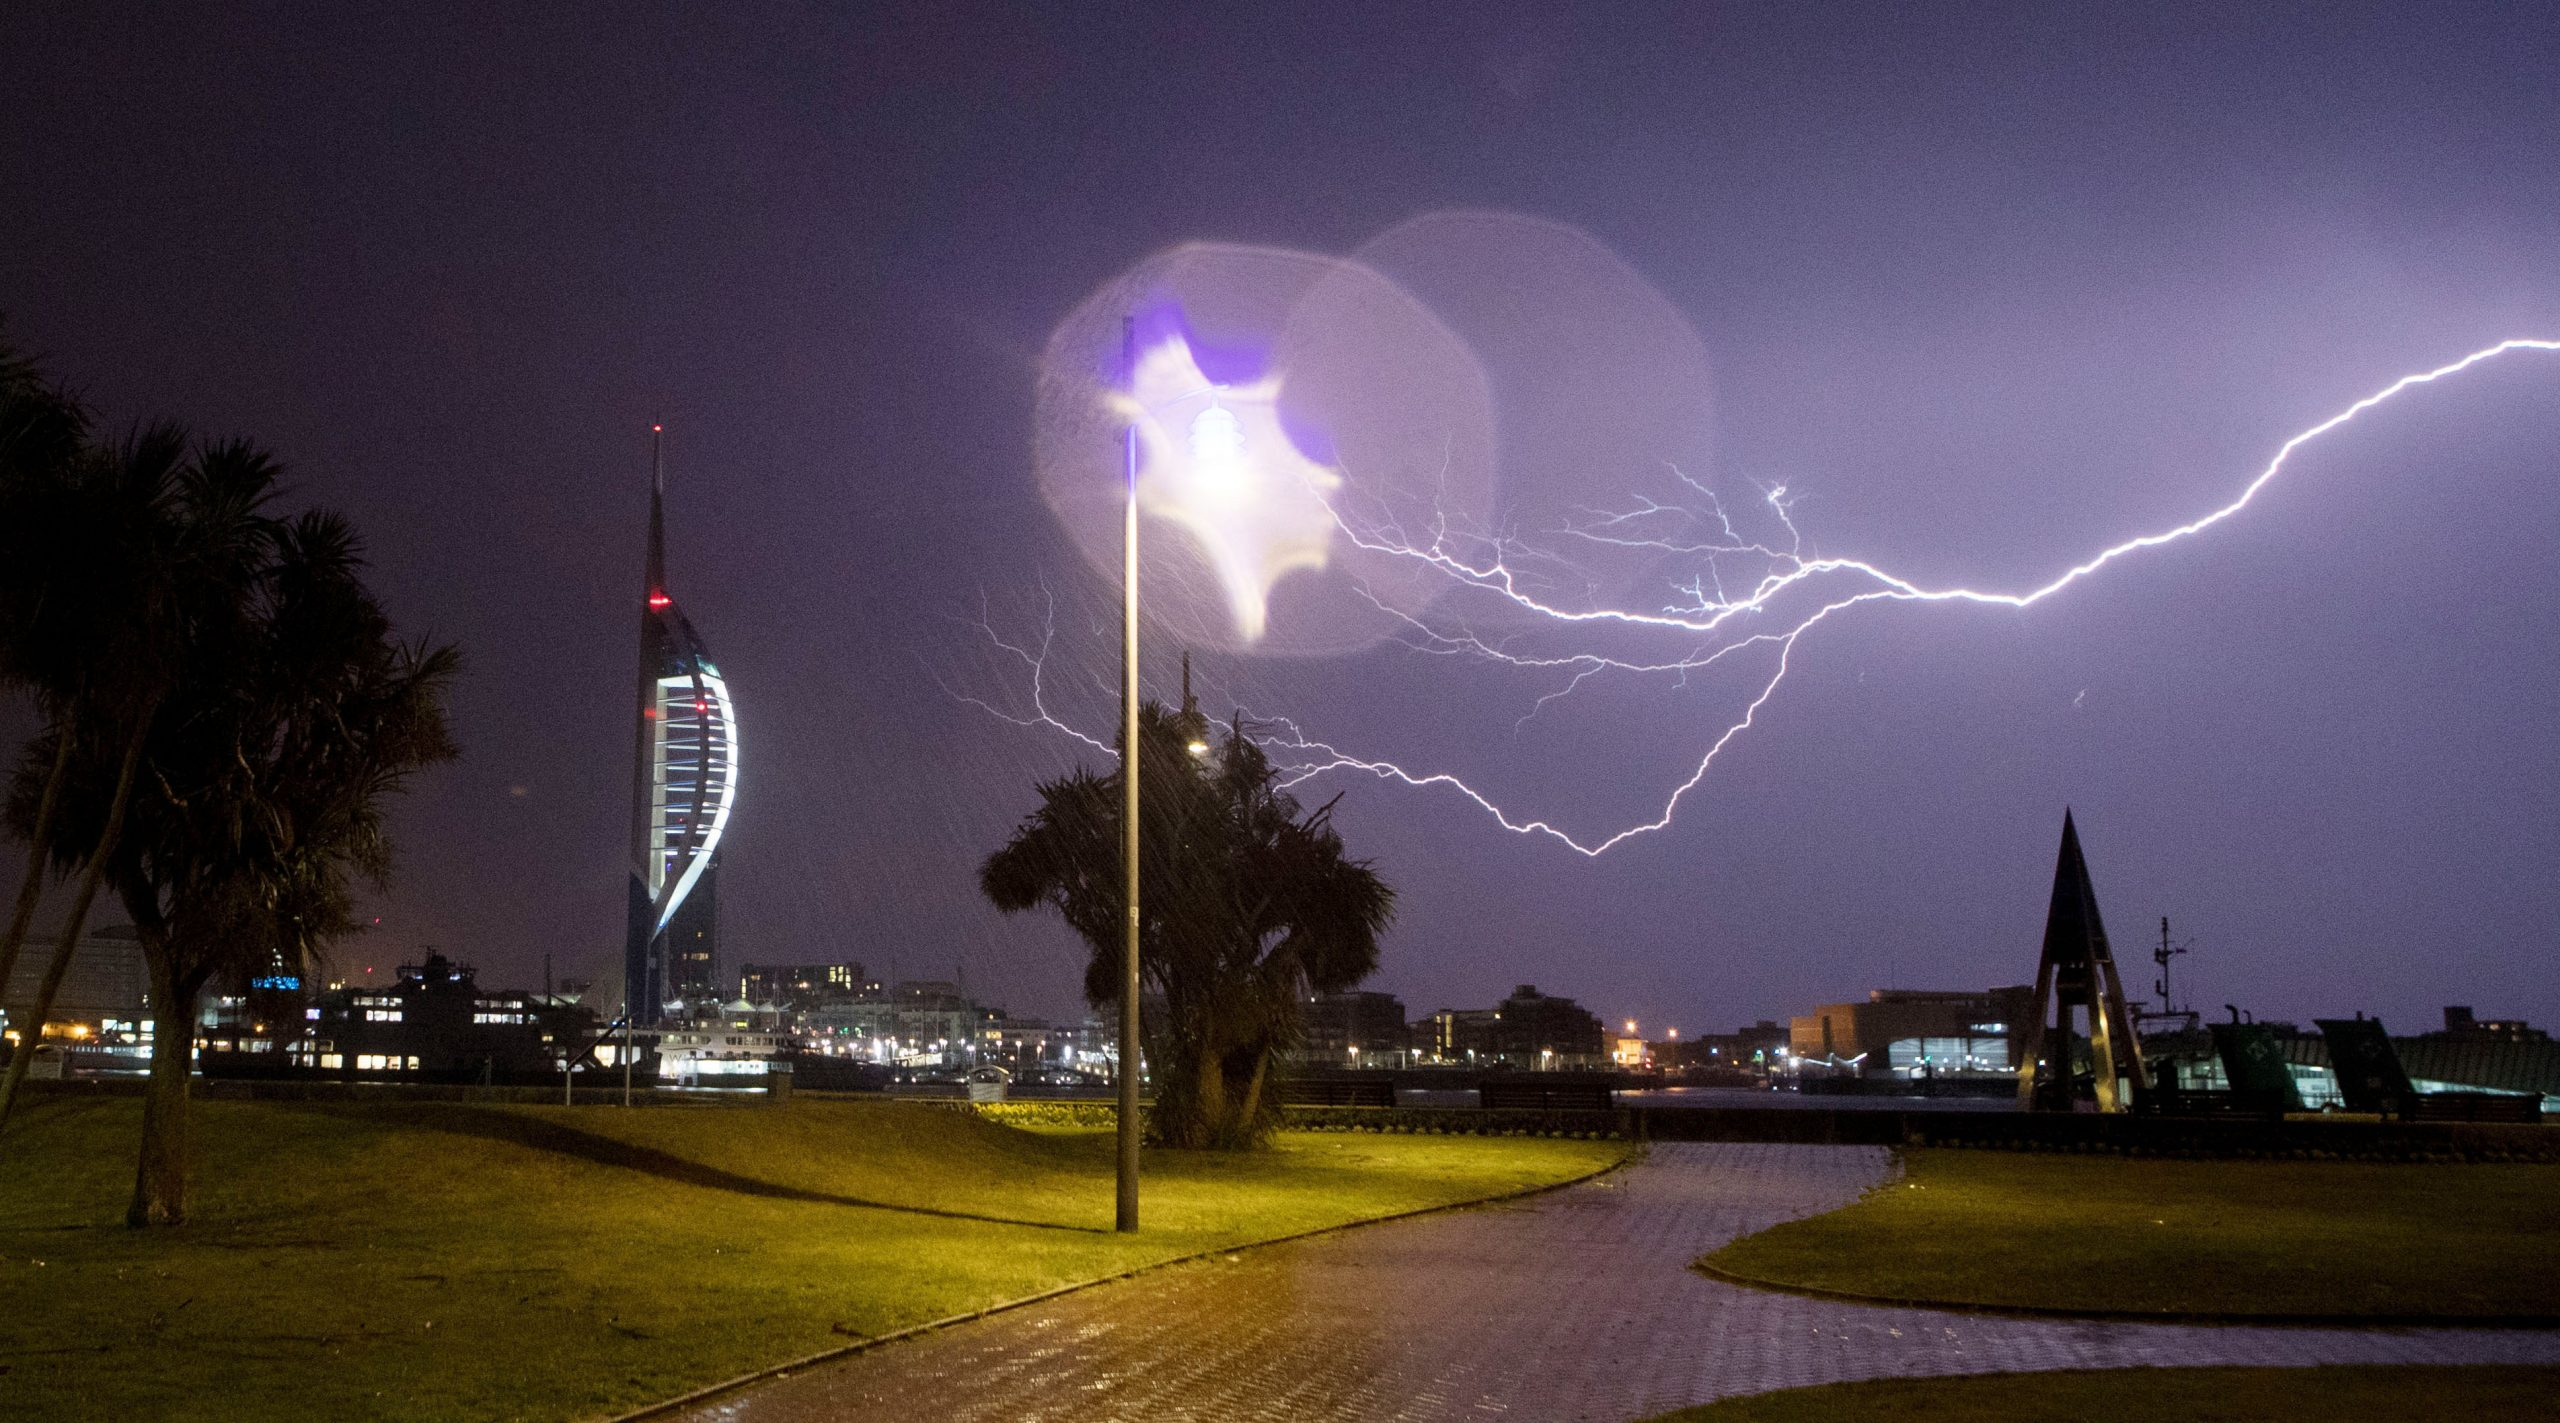 Summer Weather July 19th 2017